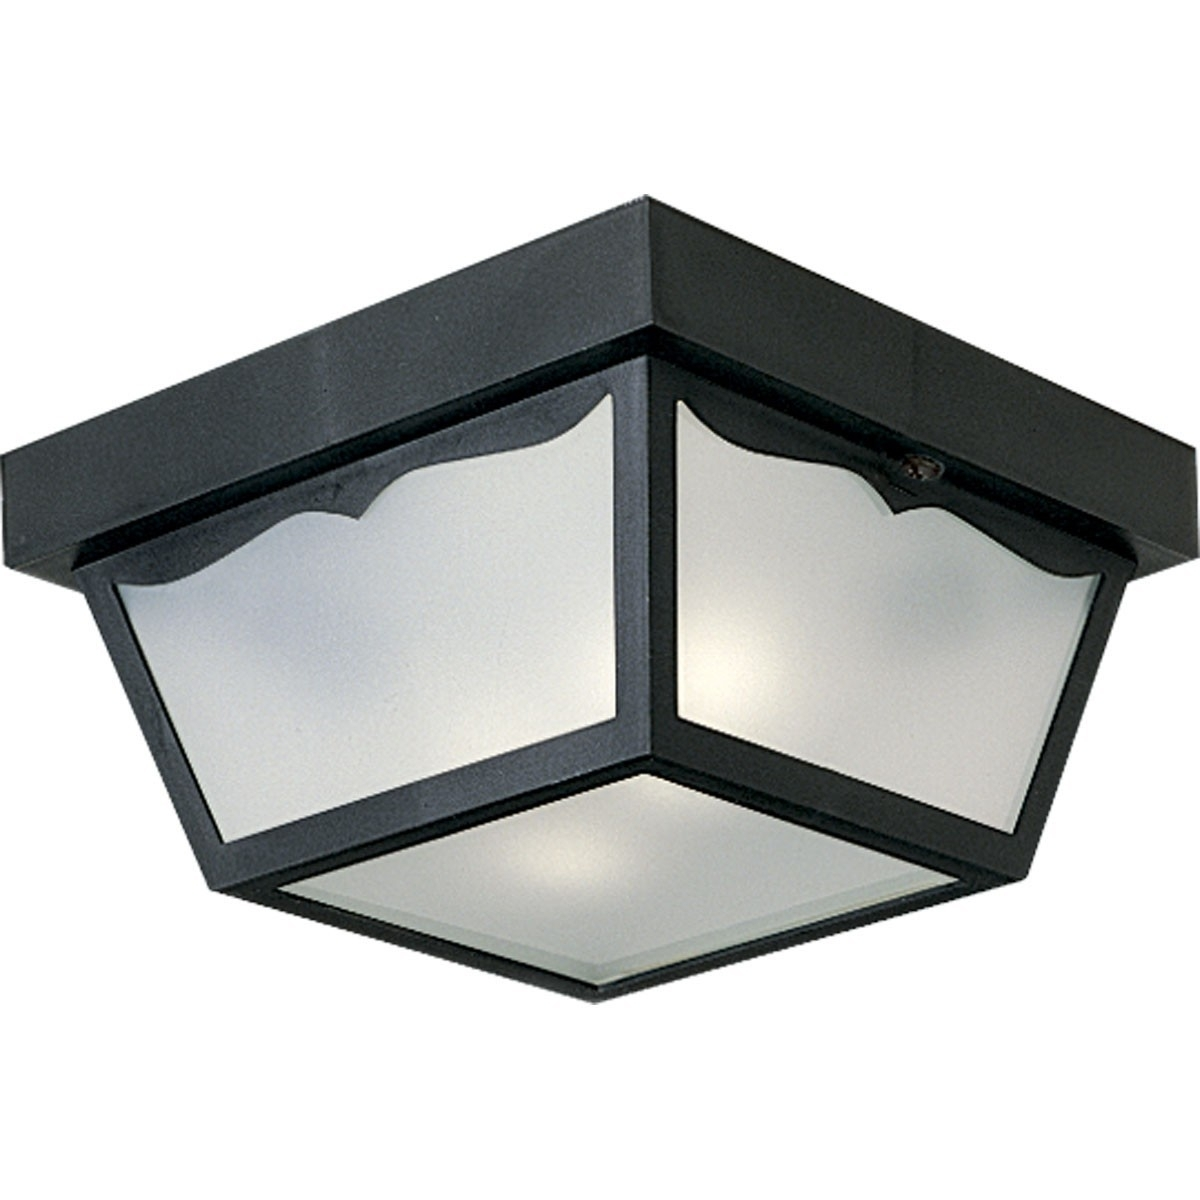 Inspiration about 60W Outdoor Flush Mount Non Metallic Ceiling Light – Progress In Outdoor Ceiling Can Lights (#6 of 15)